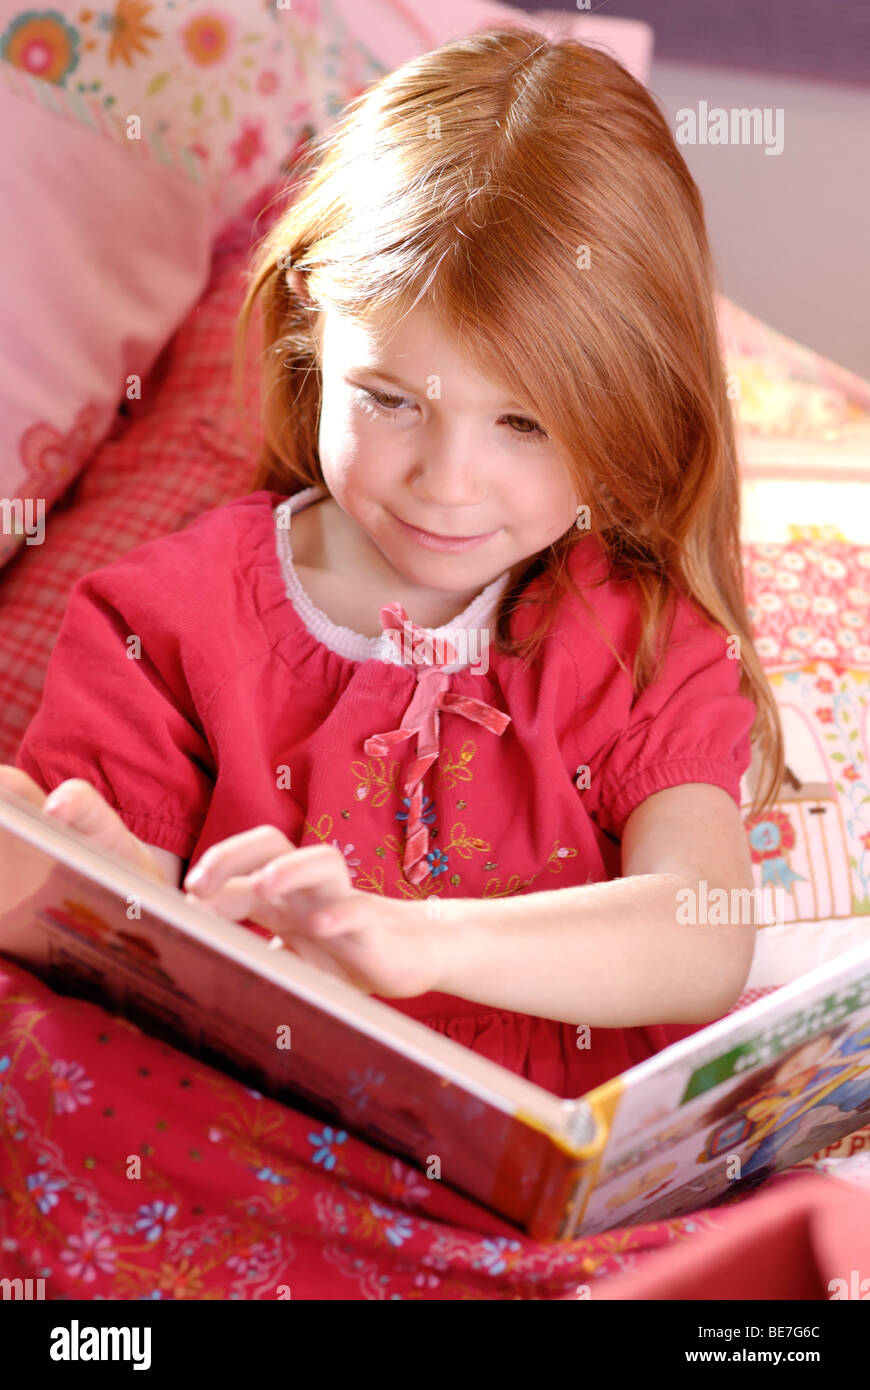 Little girl reading a picture book Stock Photo